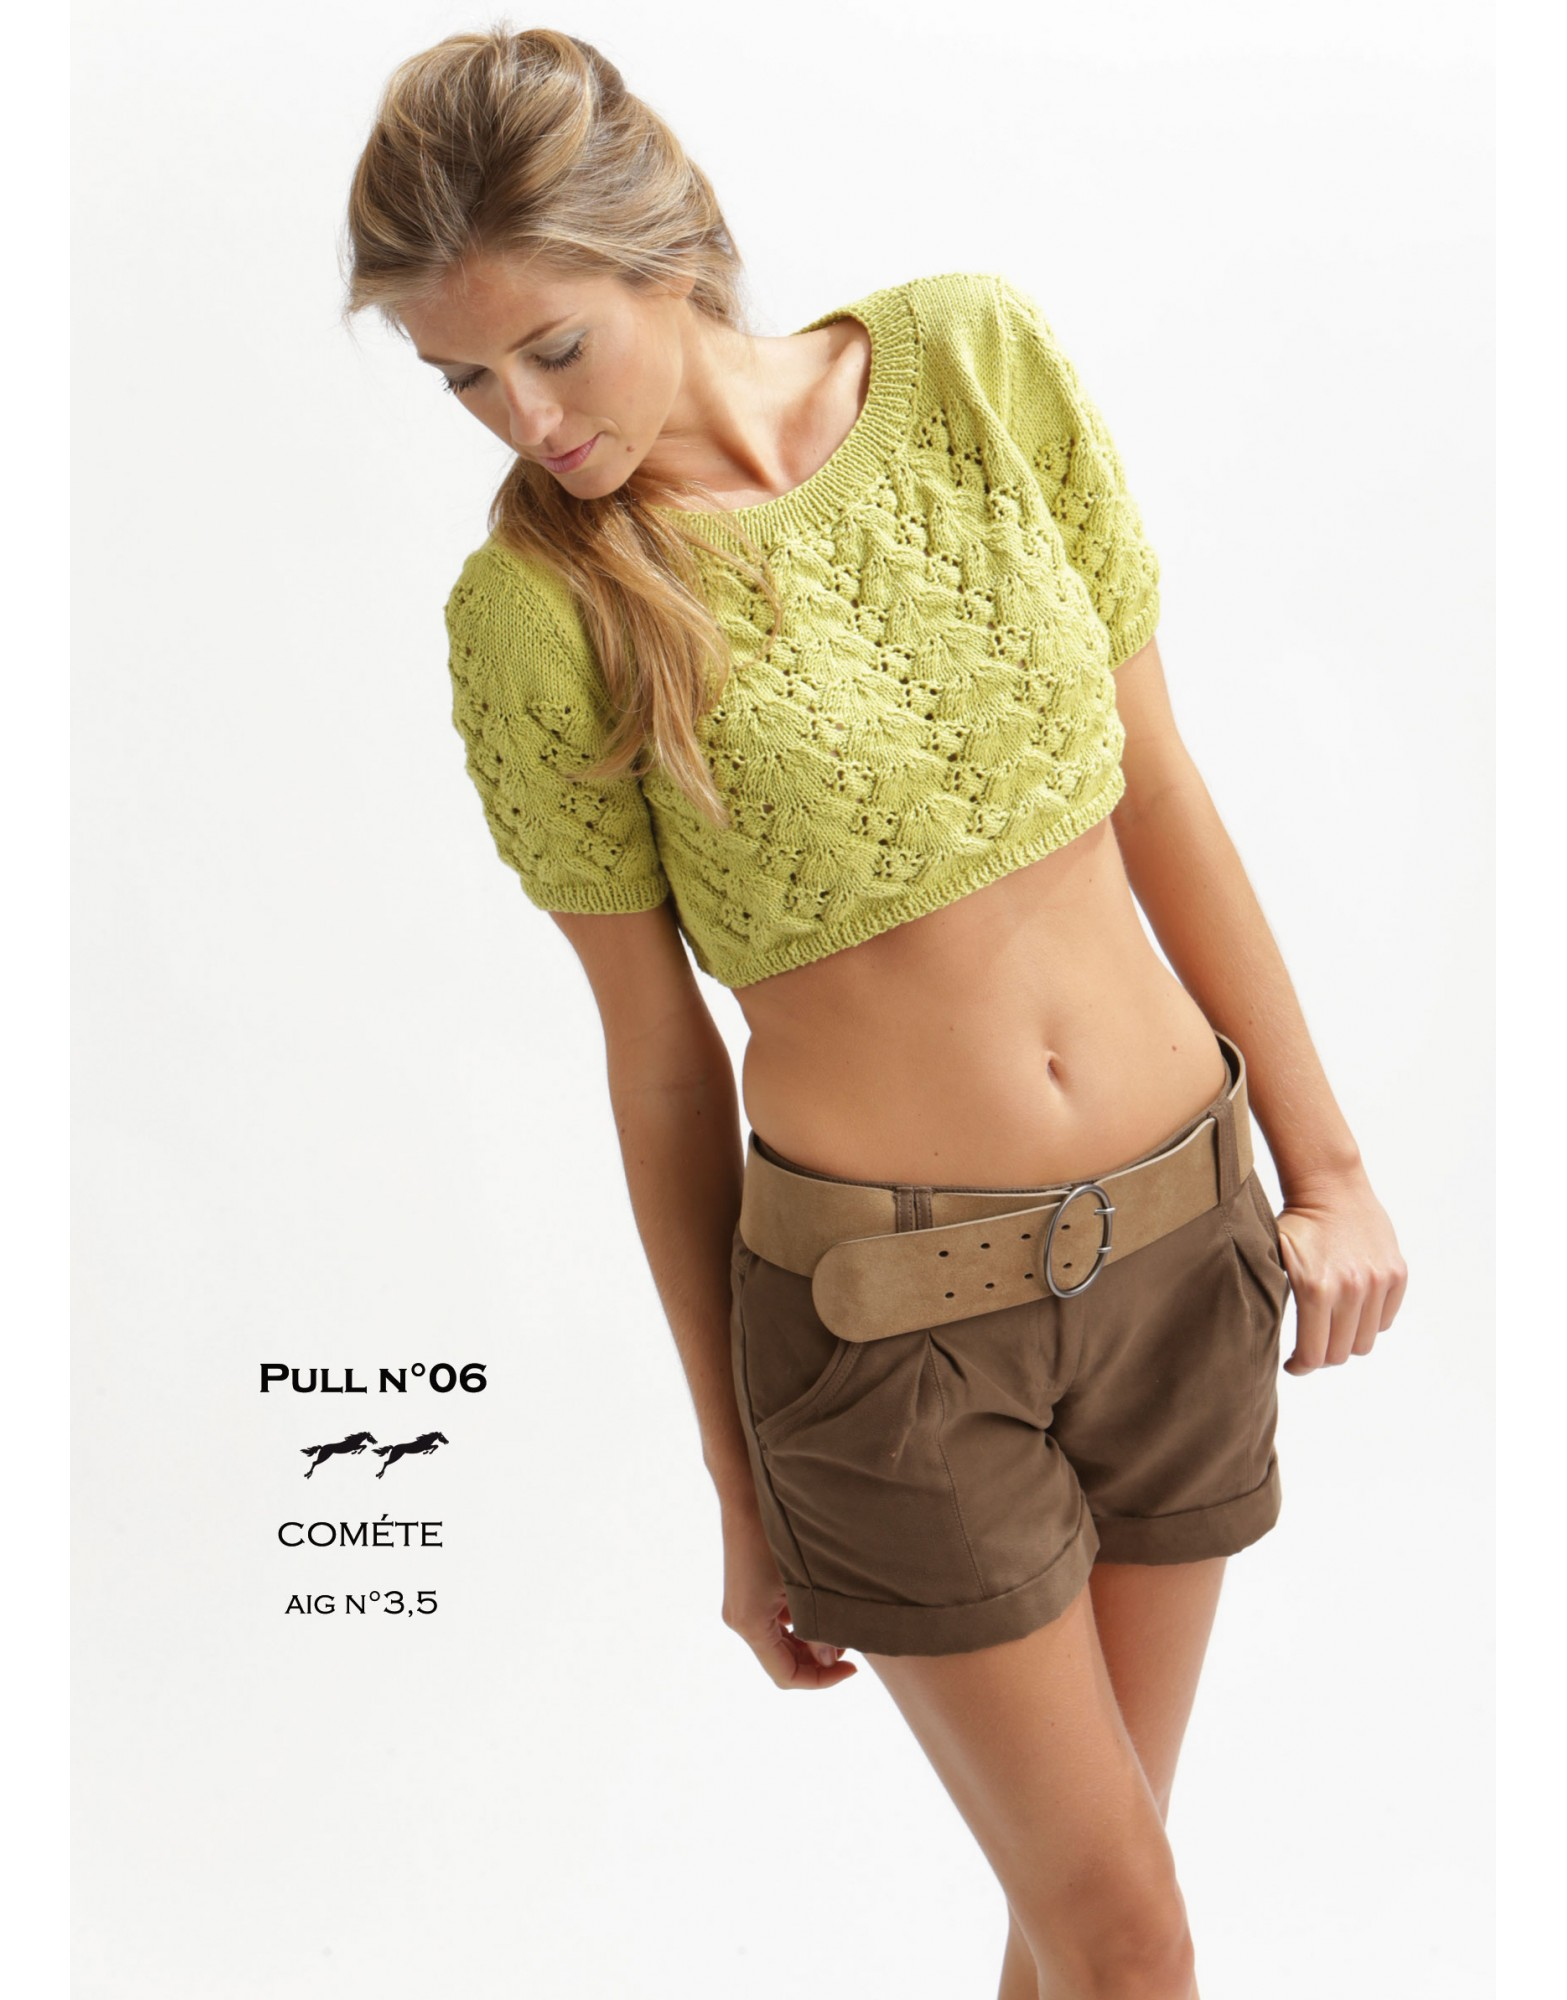 Lacy Summer Crop Top Free Knitting Pattern ⋆ Knitting Bee